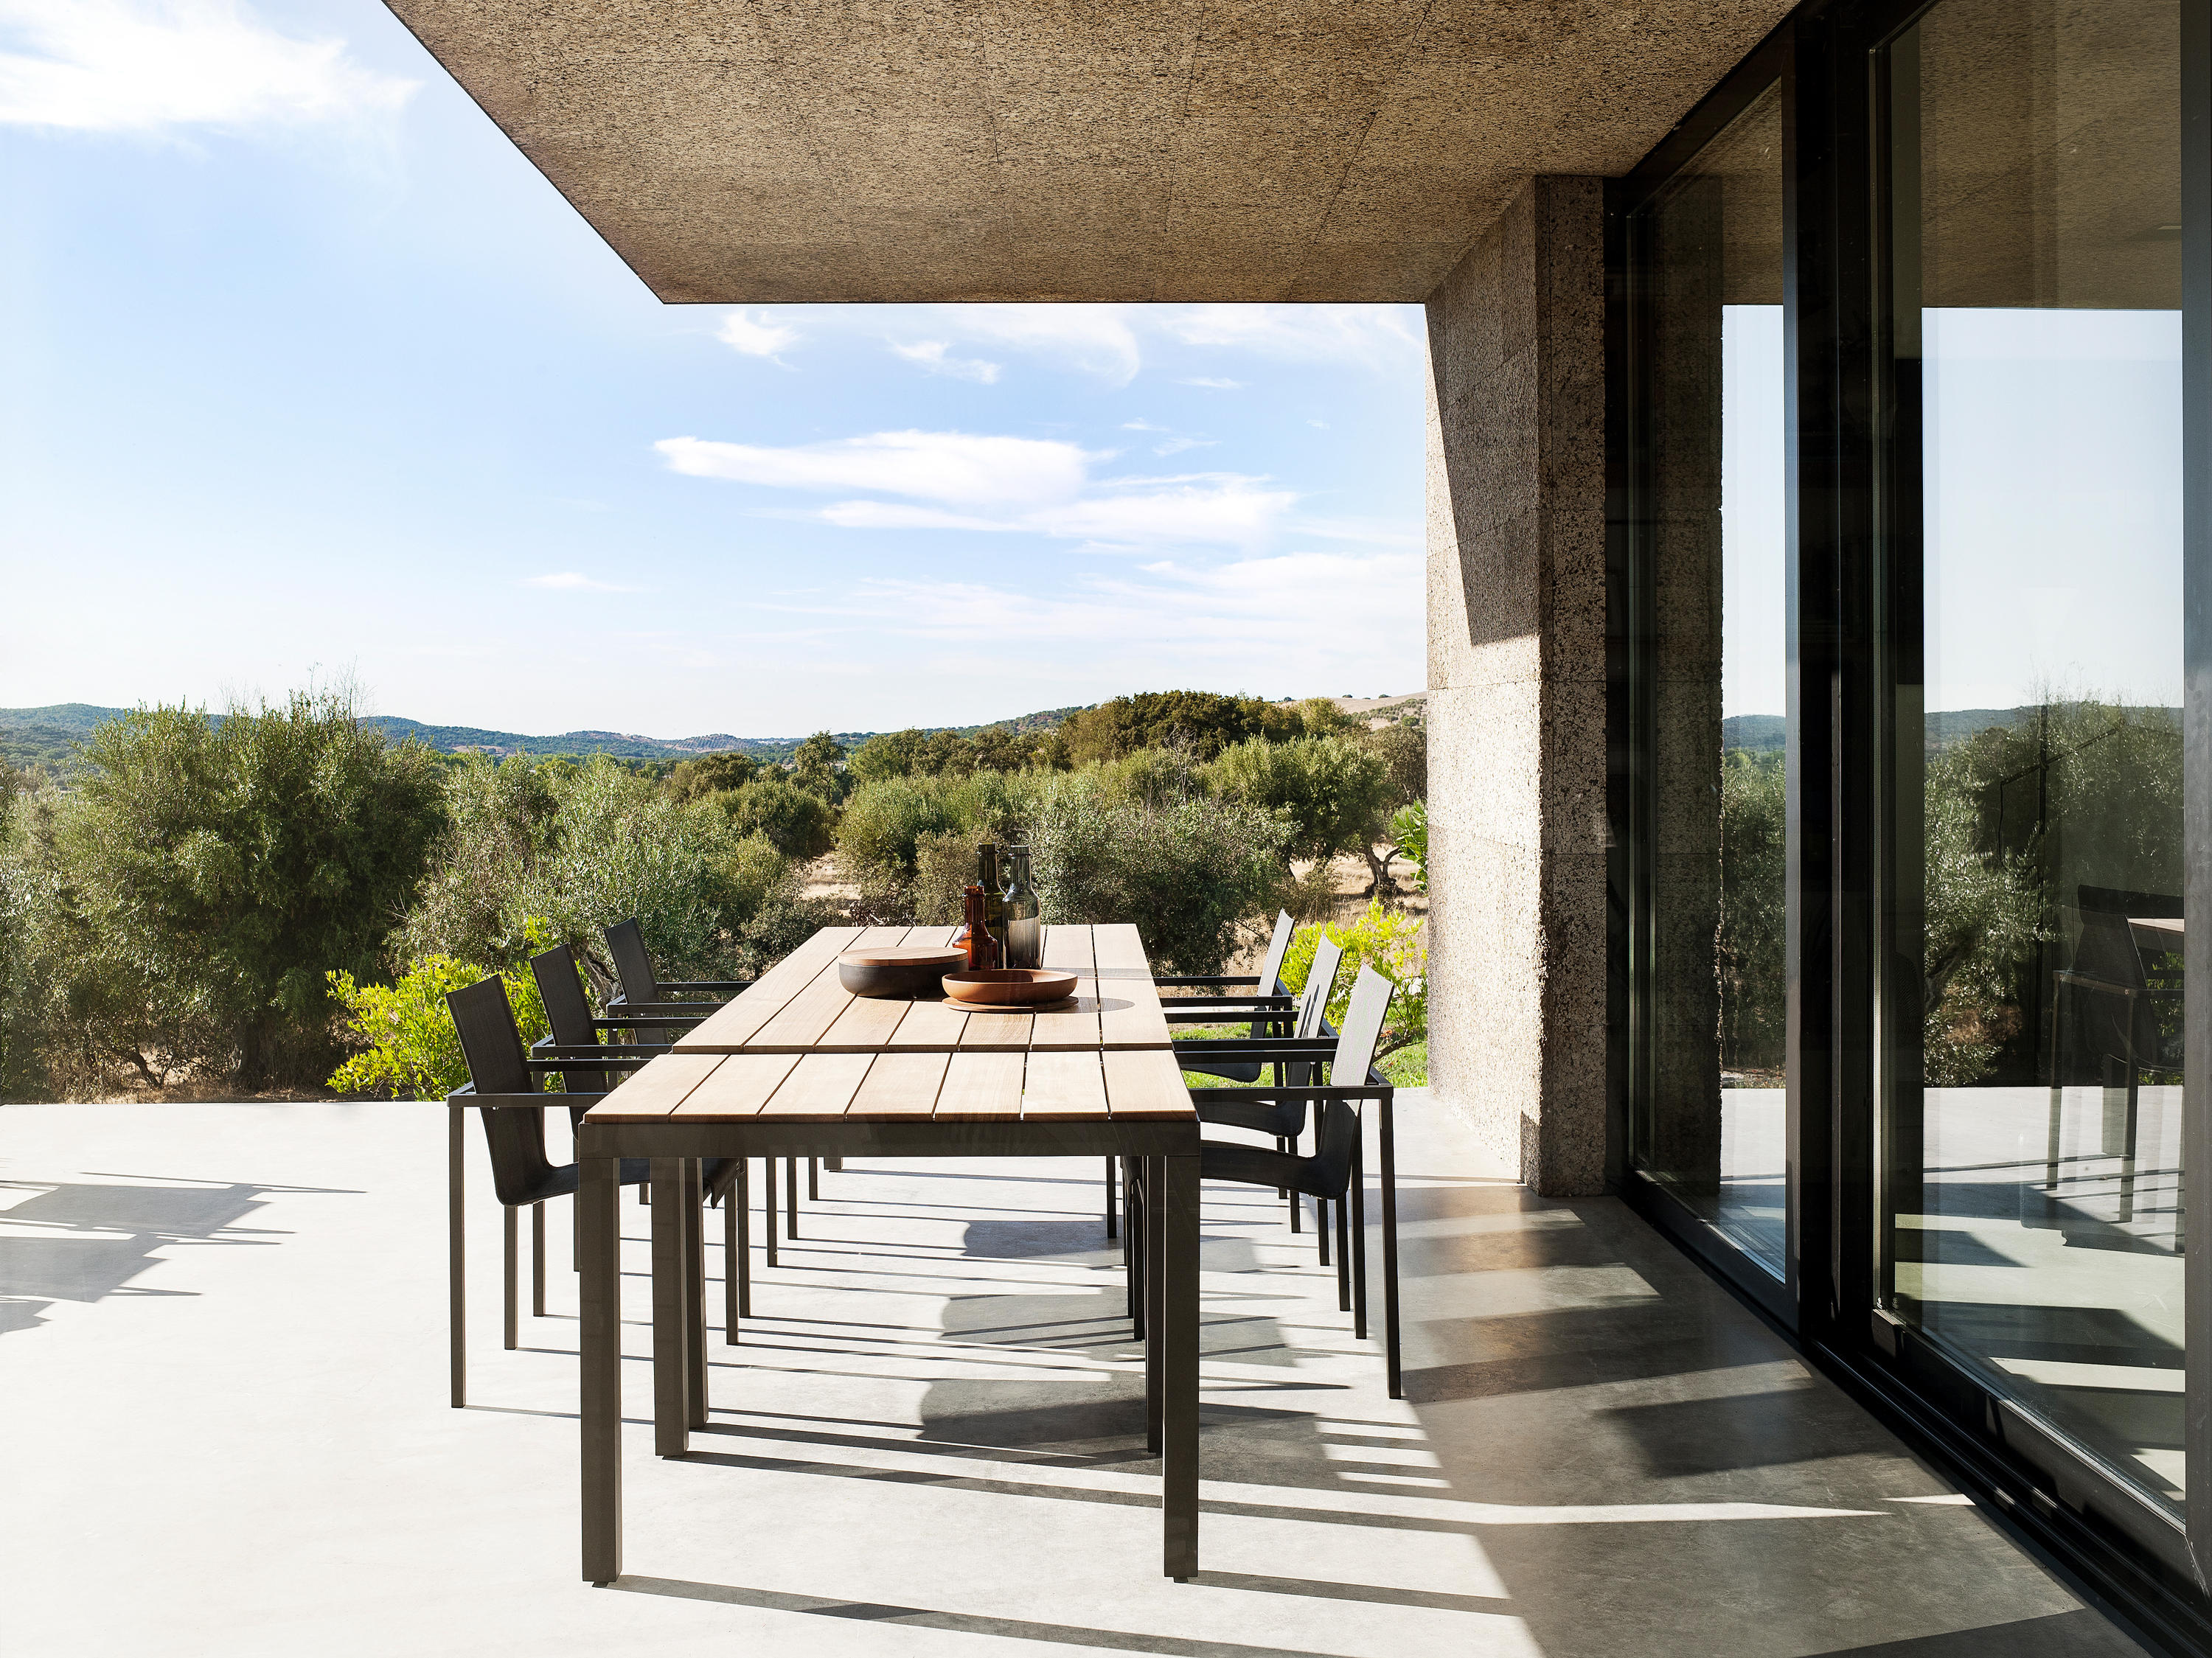 natal alu teak armchair - garden chairs from tribù | architonic, Gartengerate ideen